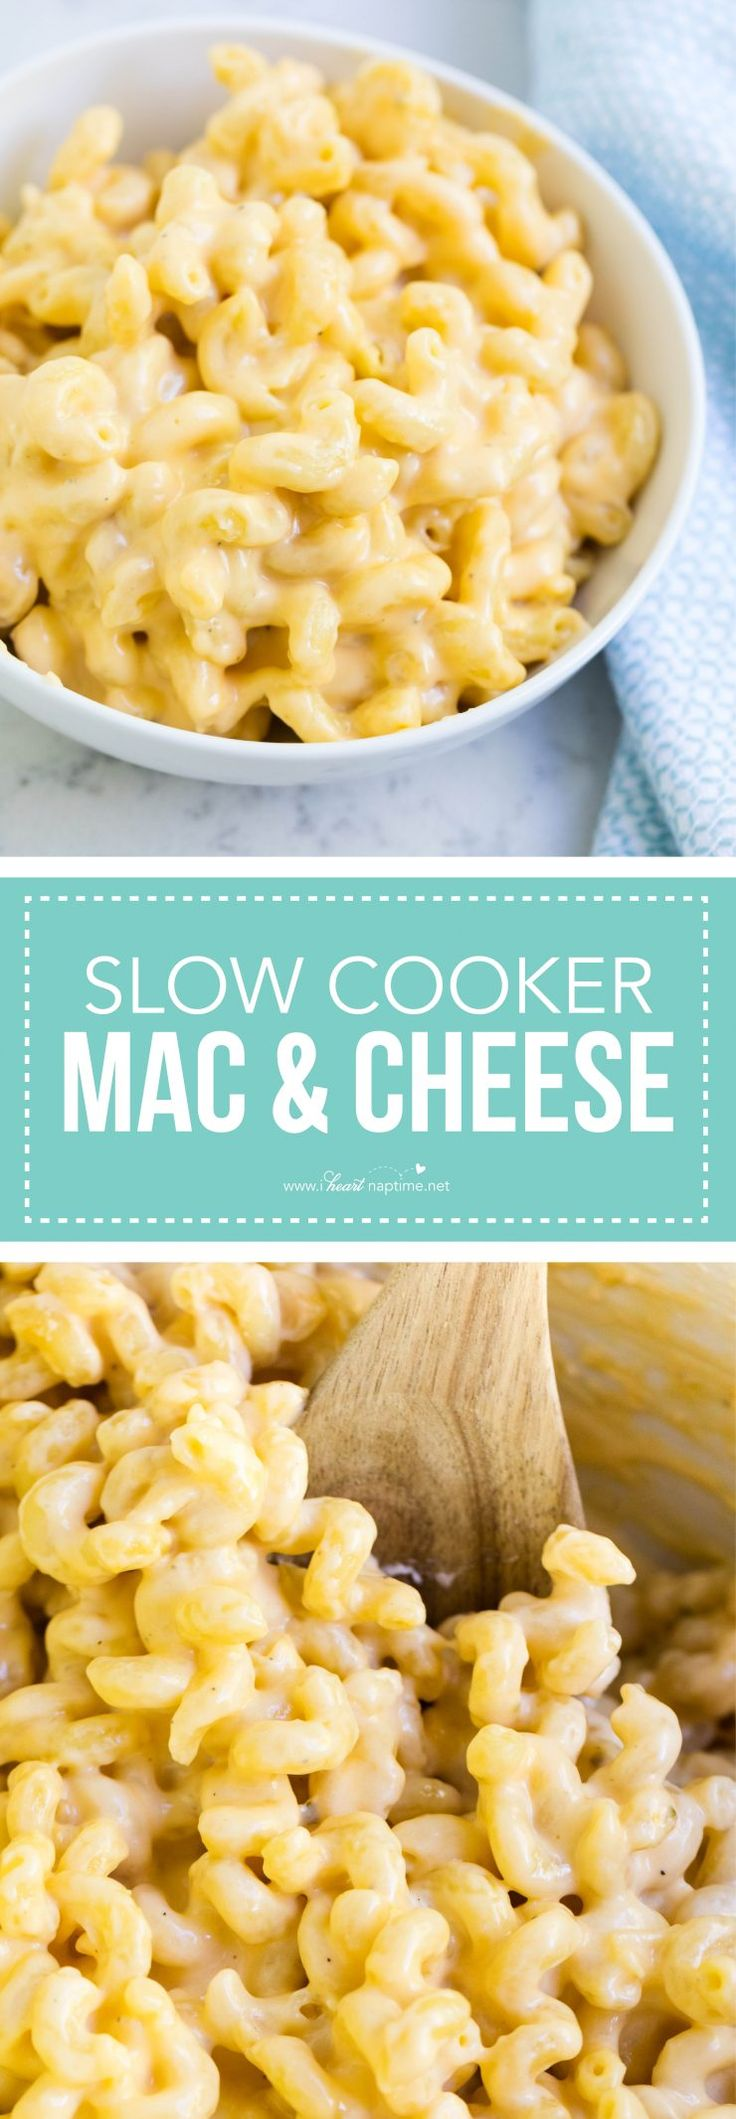 Weeknight dinner just got easier with this yummy Slow Cooker Mac + Cheese recipe.